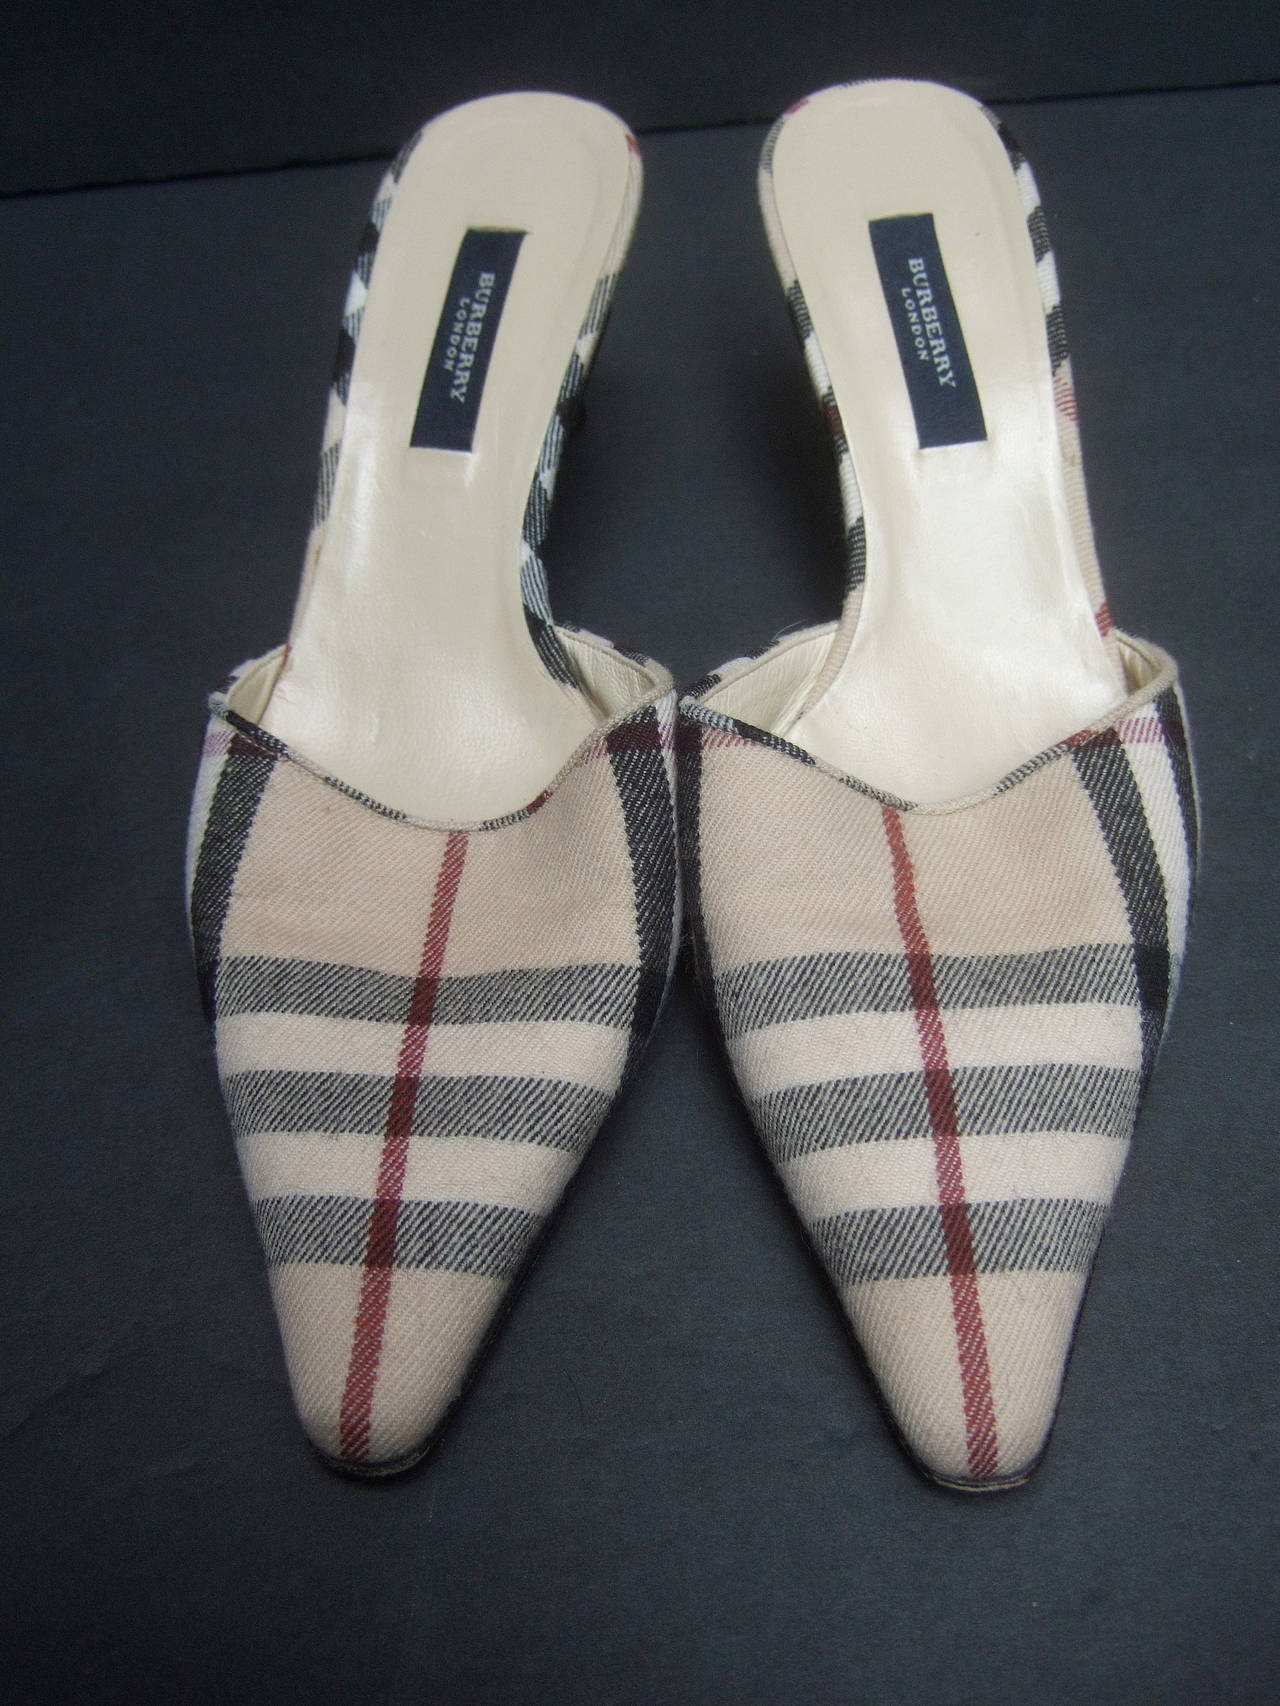 Burberry London Classic Nova Plaid Wool Mules Made in Italy Size 37.5 10